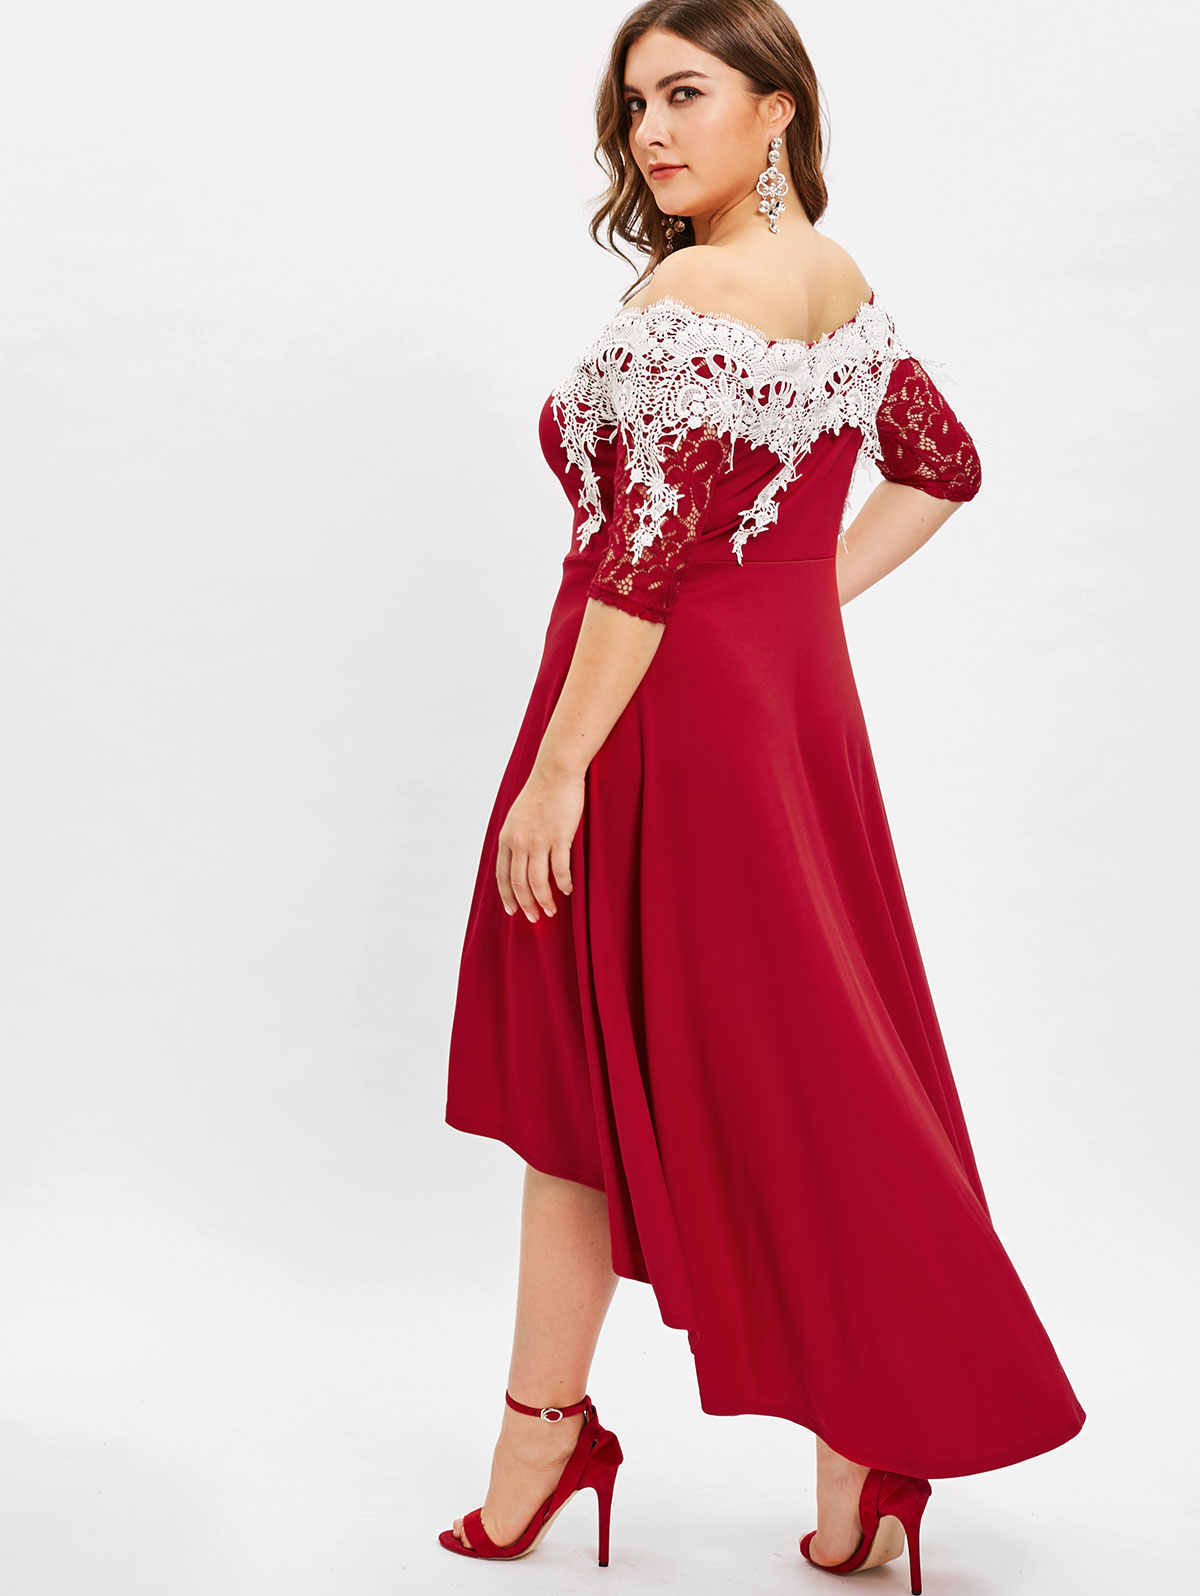 Wipalo Lace Panel Off The Shoulder Plus Size High Low Dress Half Sleeves  Mid Calf Solid Elegant Party Dress 5XL Evening Vestidos